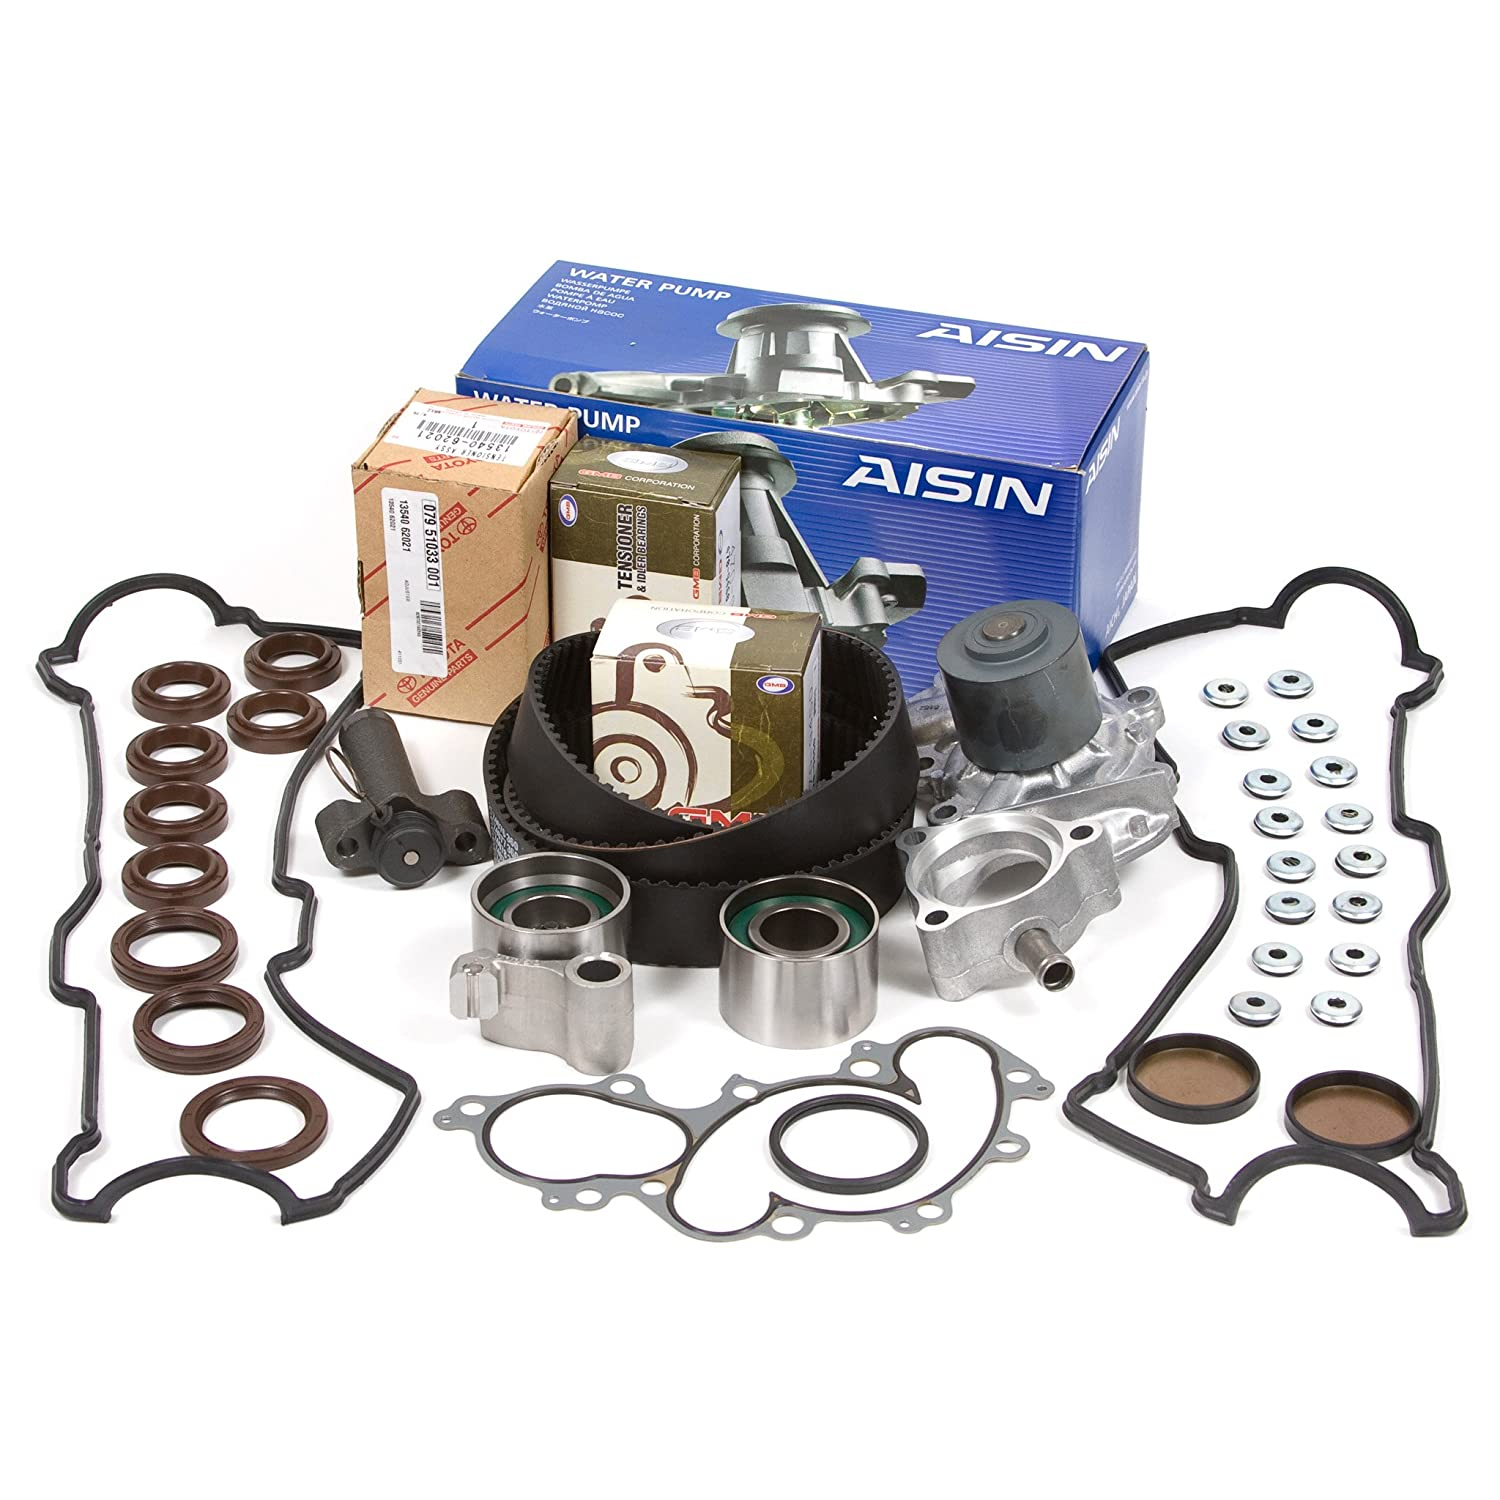 95-04 Toyota 3.4 DOHC 24V 5VZFE Timing Belt Kit w/ Hydraulic Tensioner AISIN Water Pump Valve Cover Gasket Domestic Gaskets